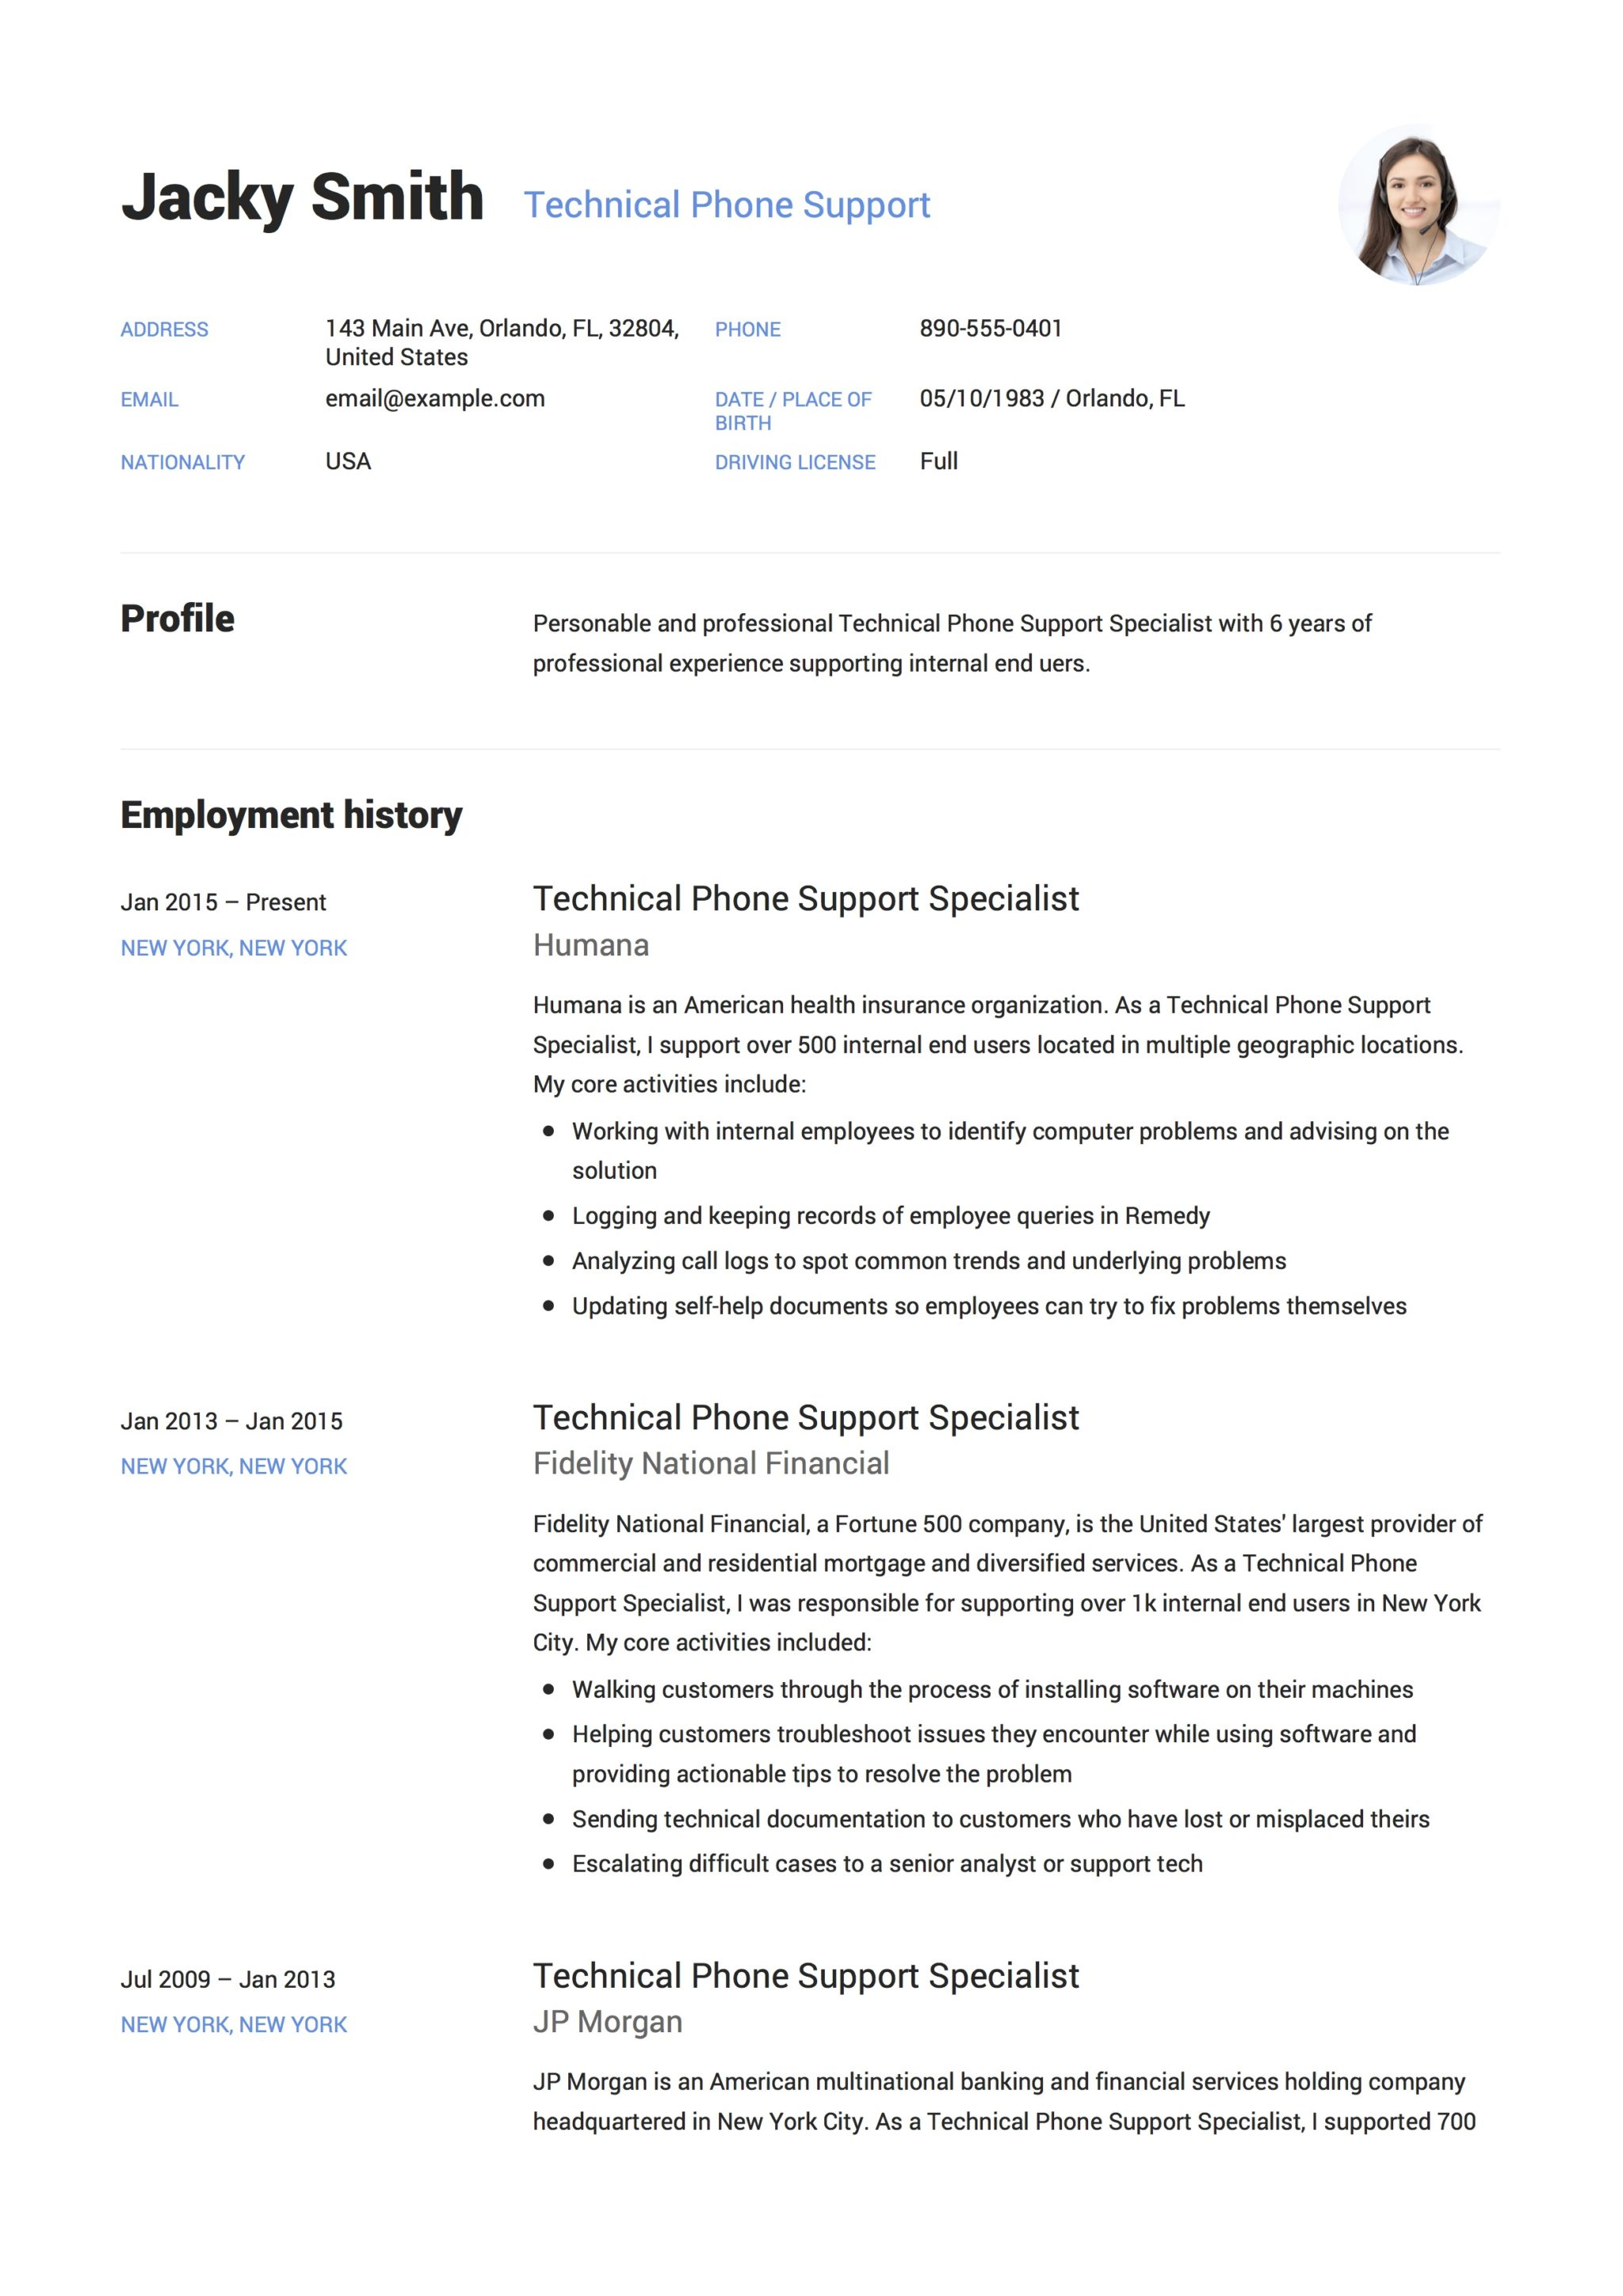 Resume Sample Technical Phone Support 1  American Resume Samples